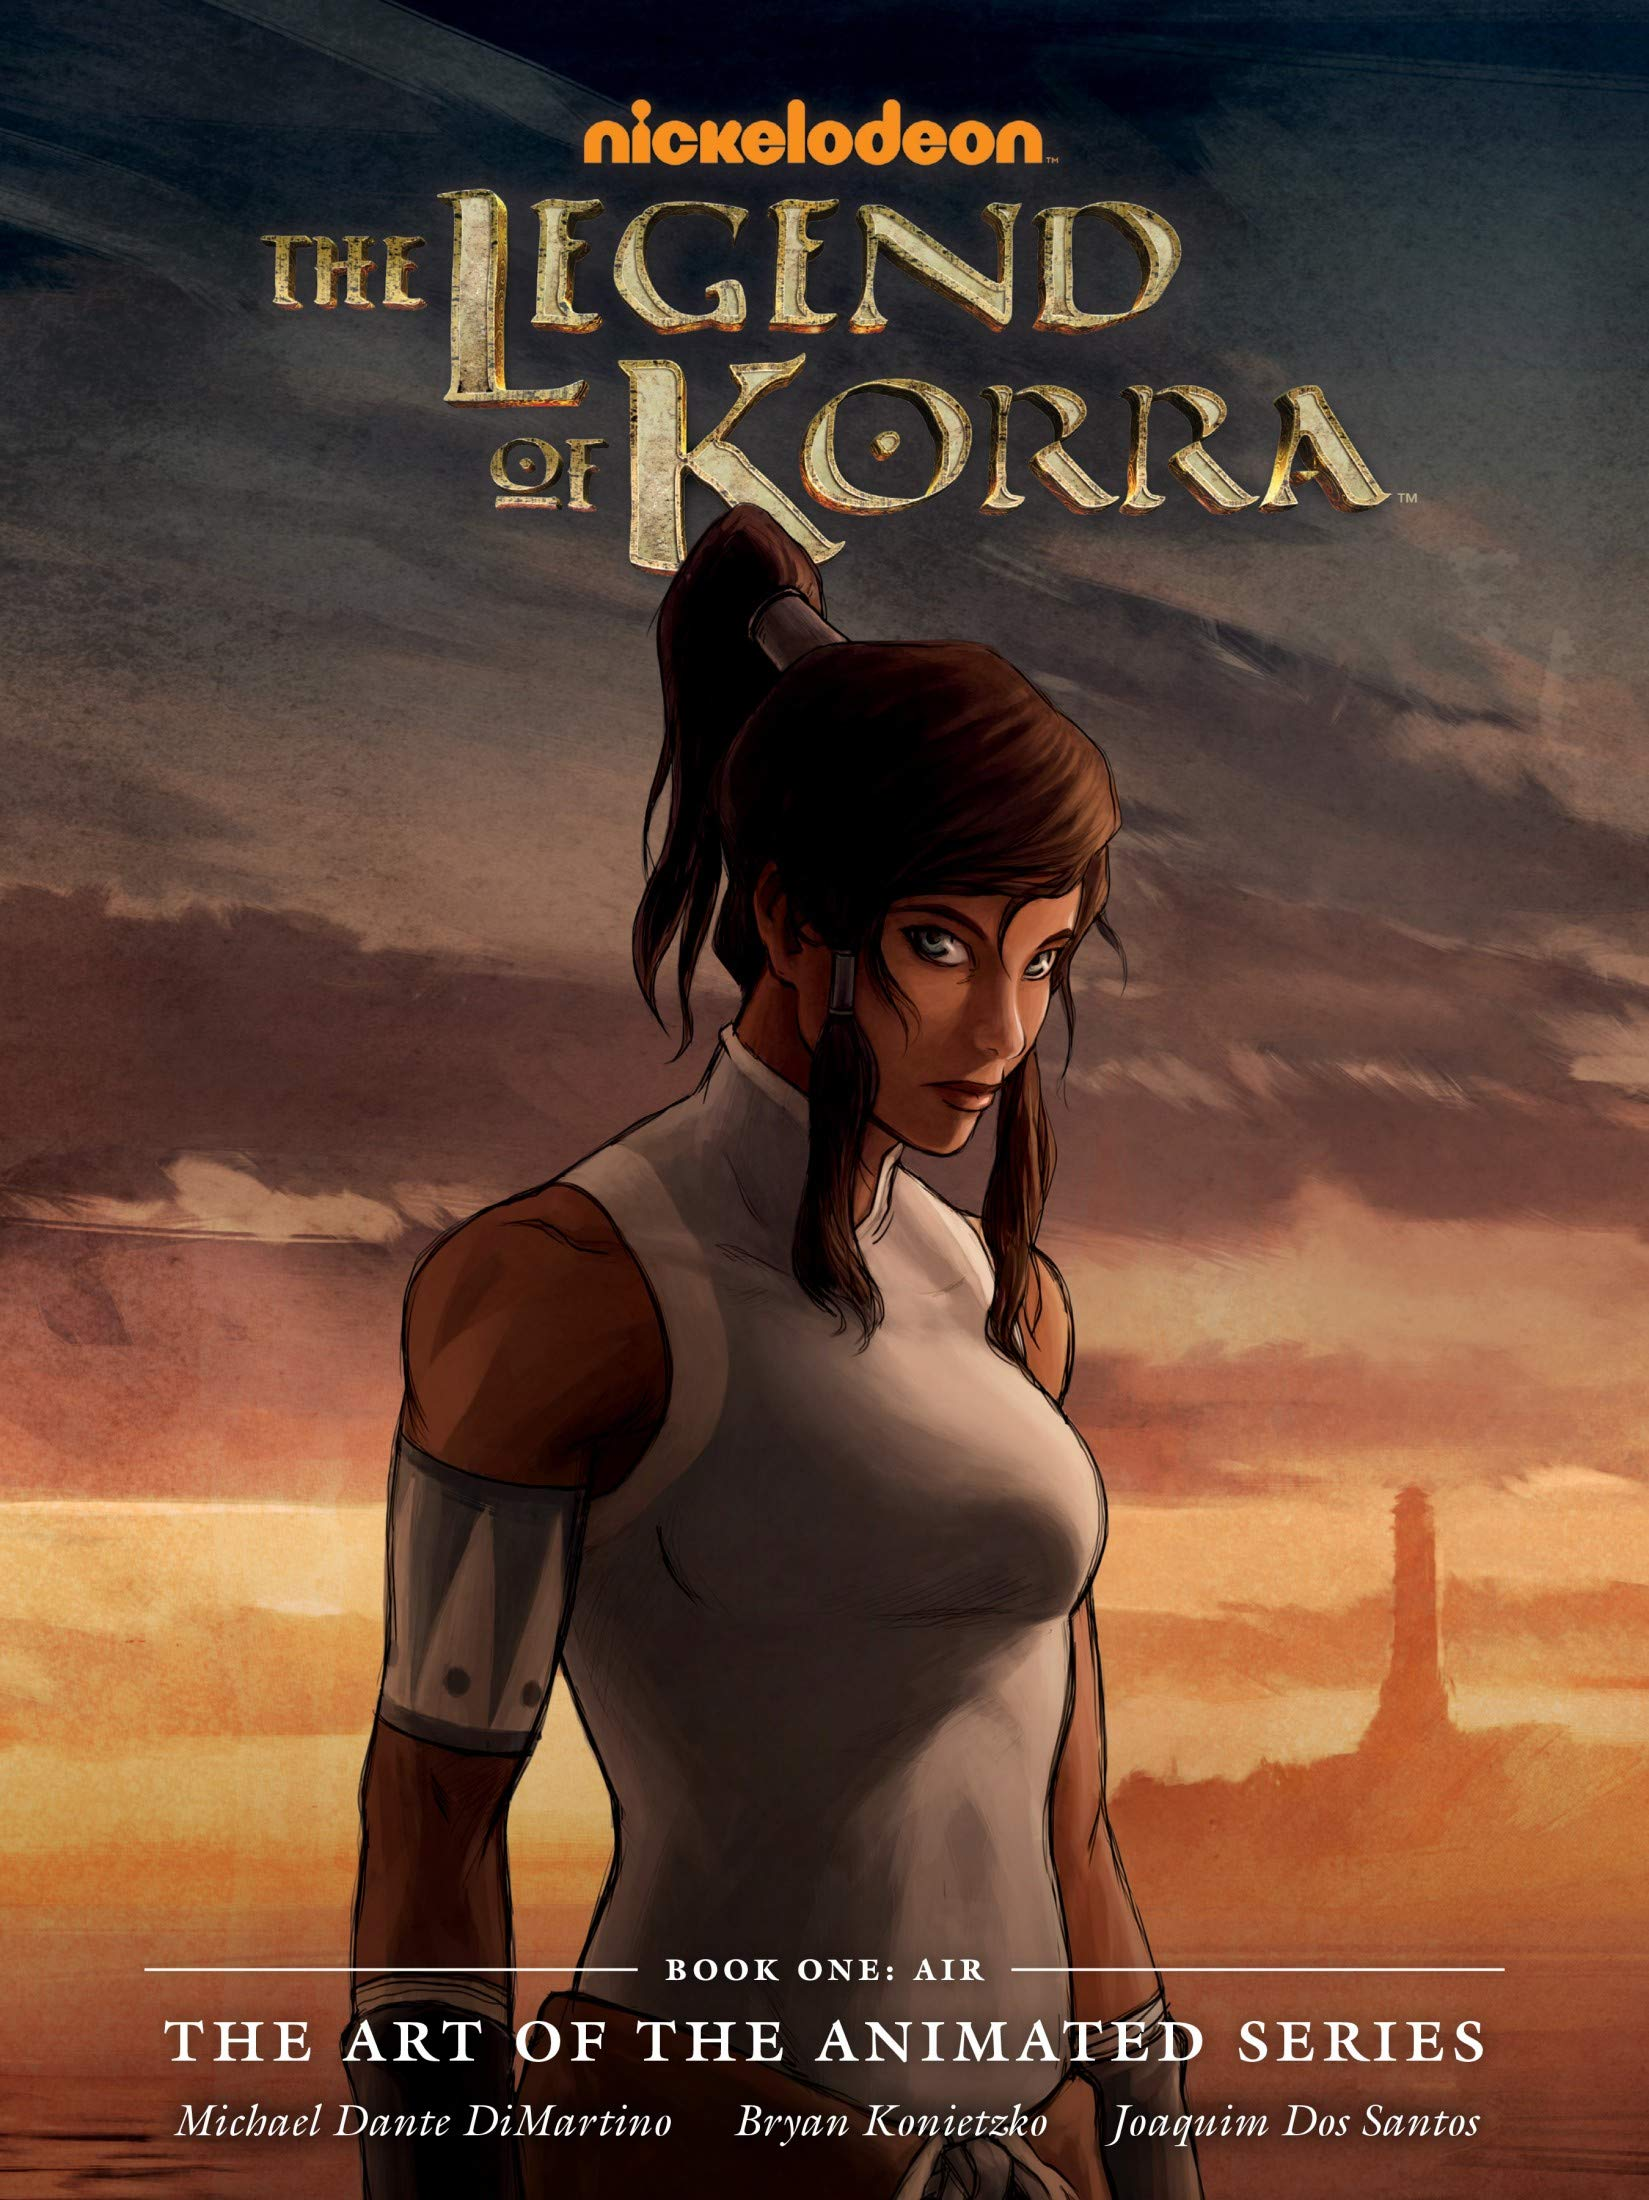 Kora: Legend - Vol 1 Great Adventure Comic Avatar The Legend Graphic Novels Of Korra For Young & Teens , Adults